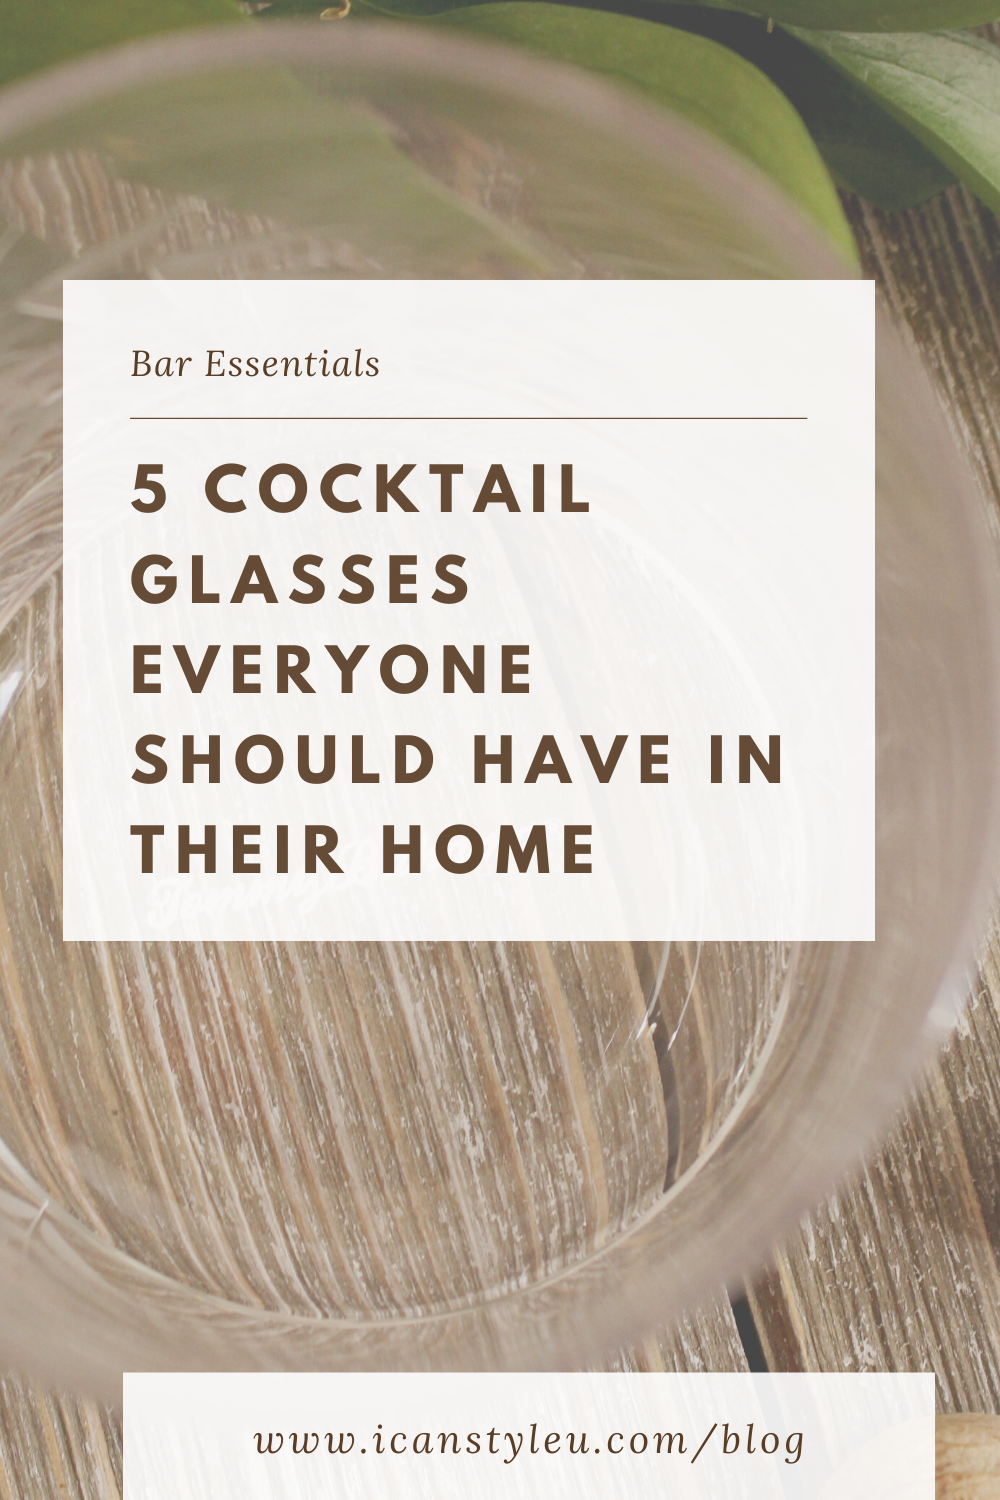 5 Cocktail Glasses Everyone Should Have in their home